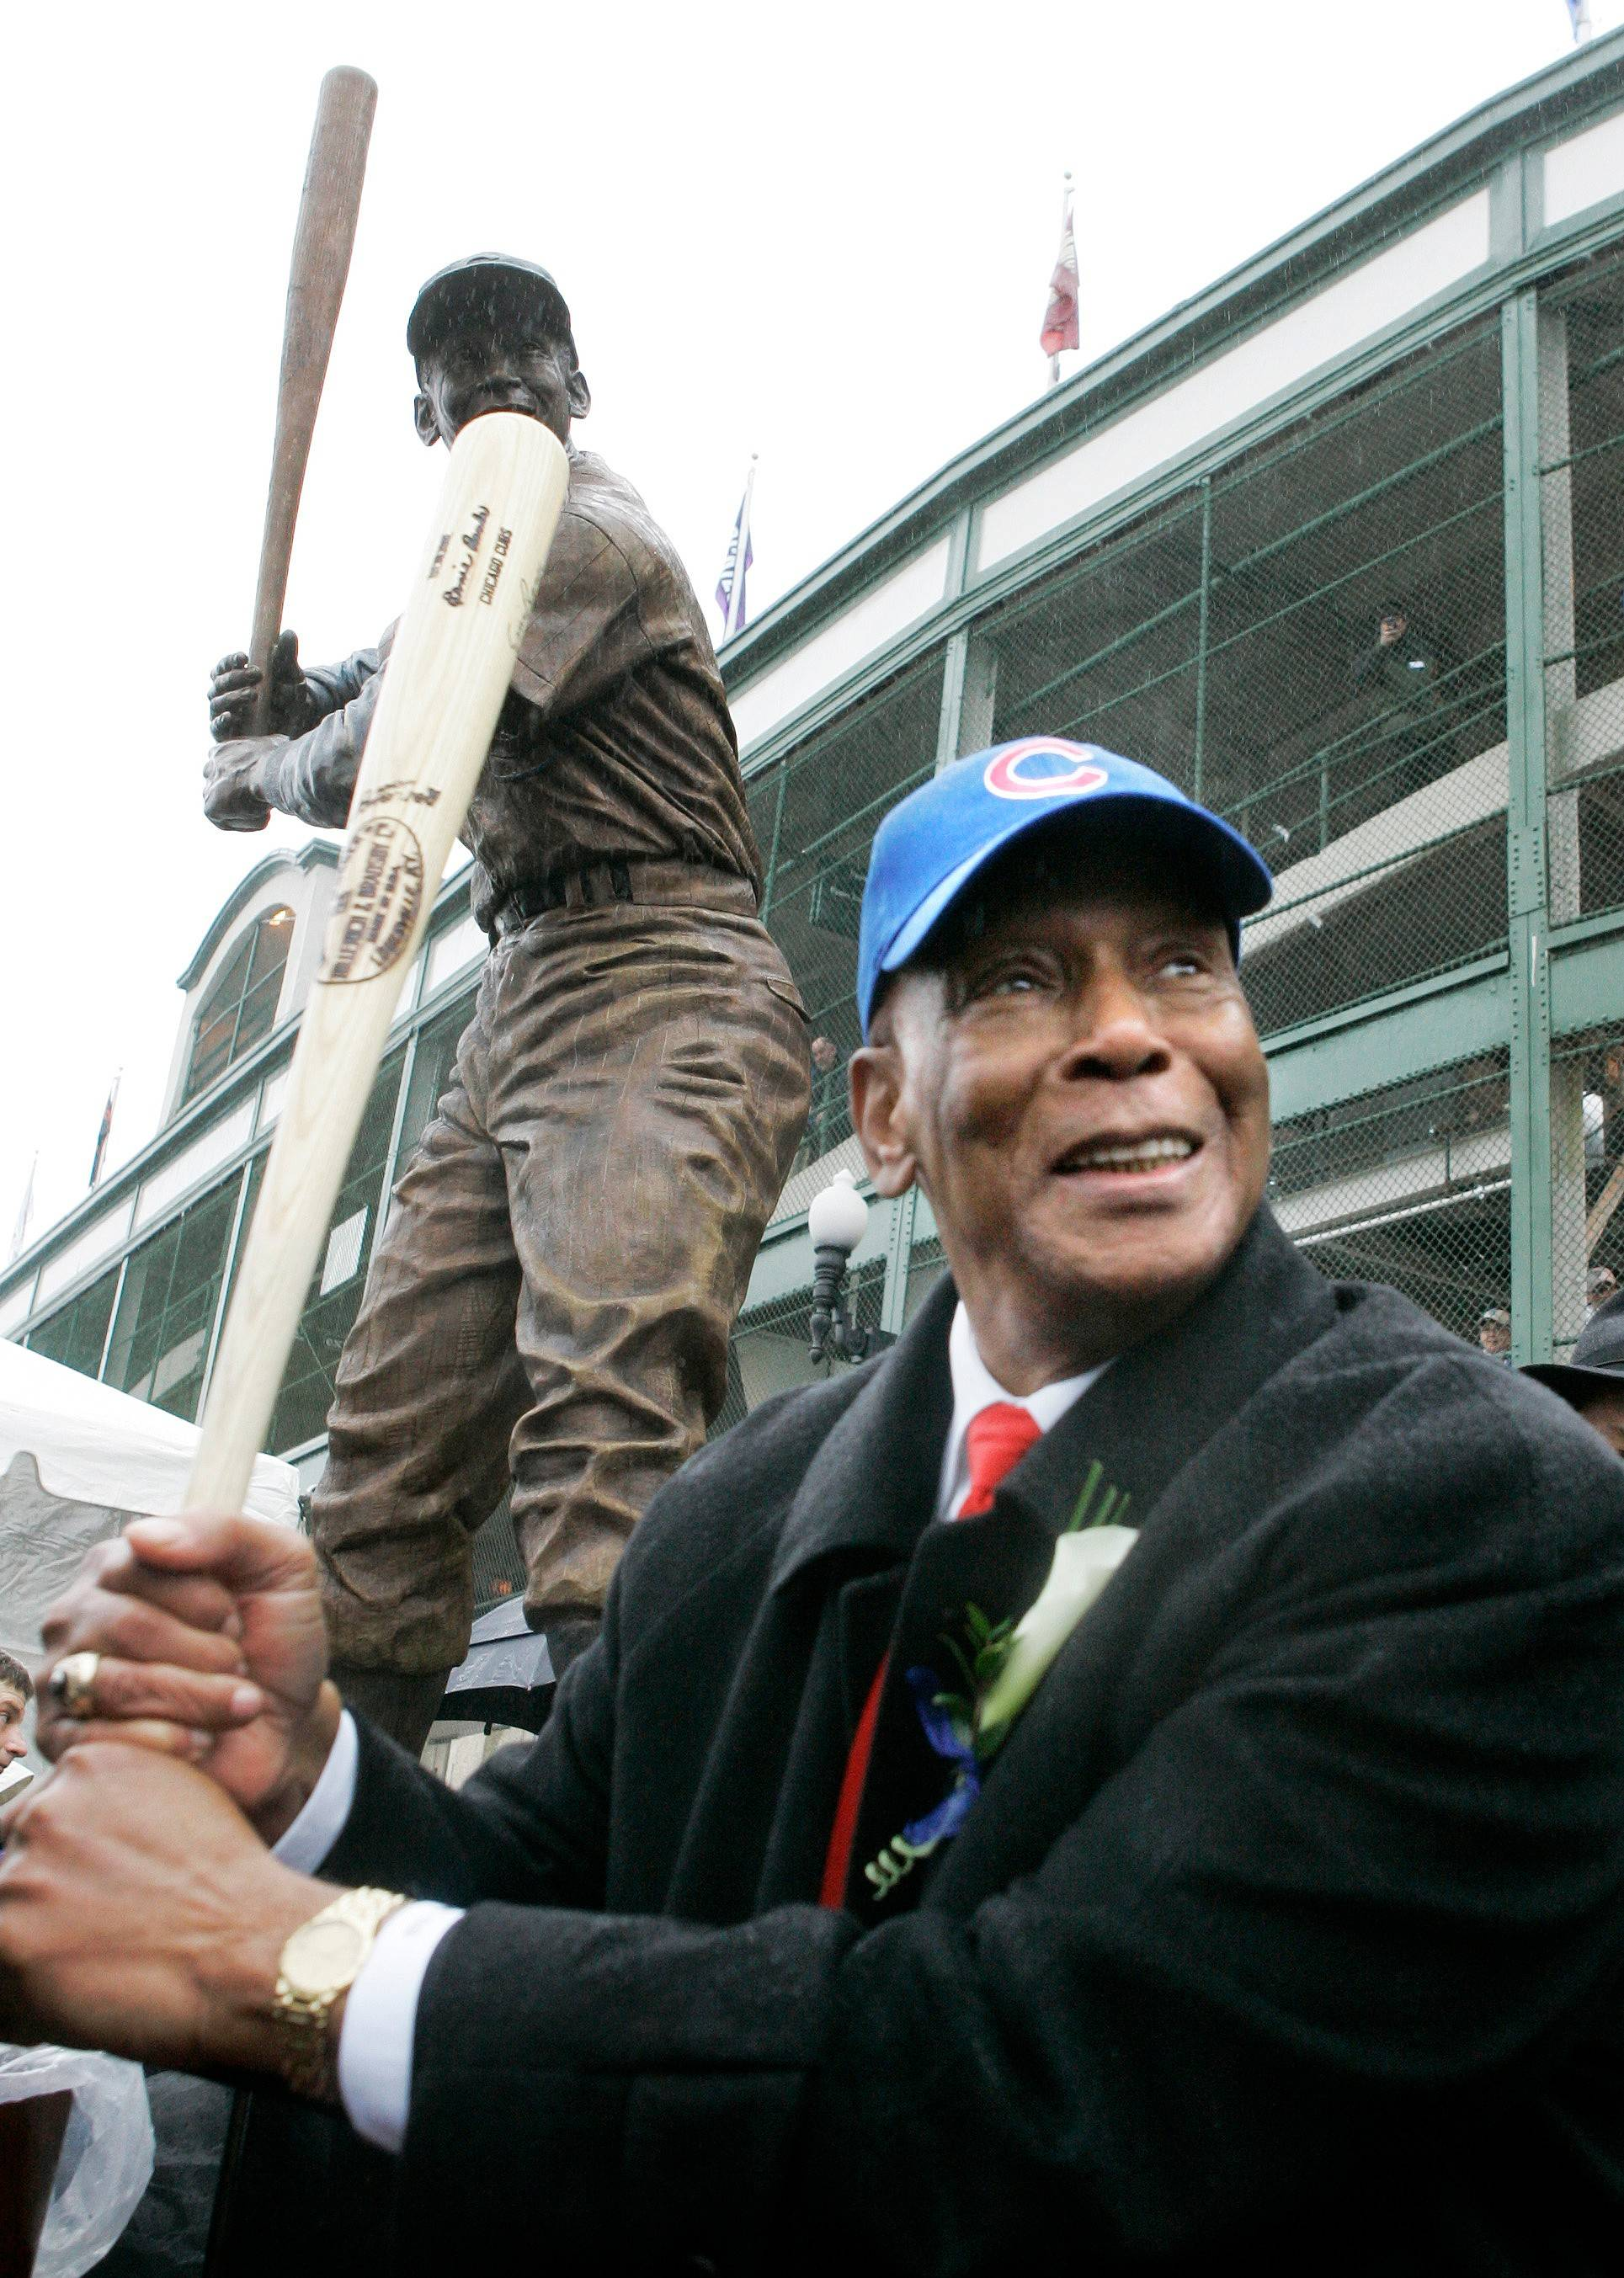 Rozner: Thank you, Mr. Cub, for giving your all